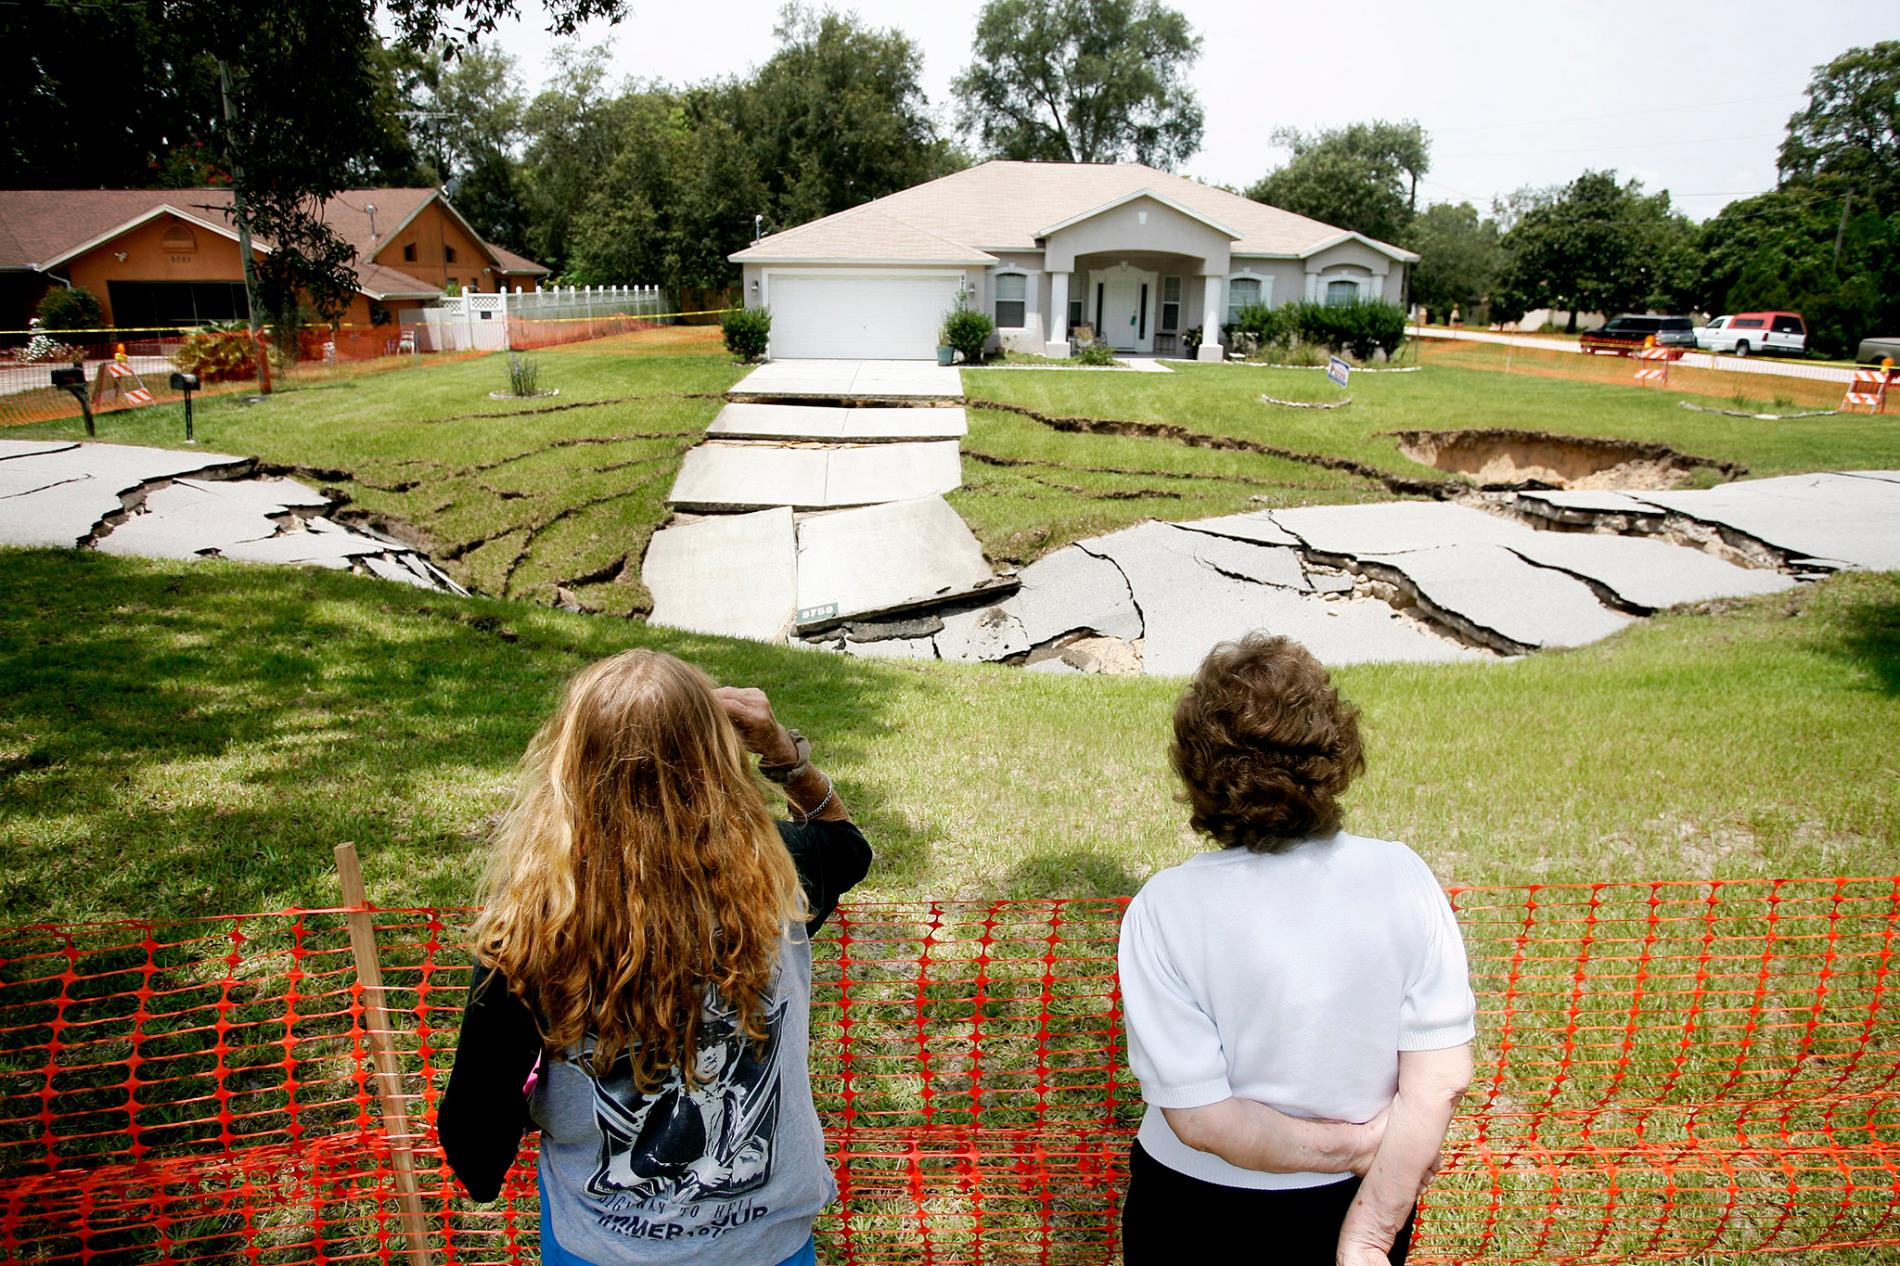 Dramatic Pictures Of Recent Sinkholes Reveal Hazards Lurking Below - Sinkhole Map Hernando County Florida